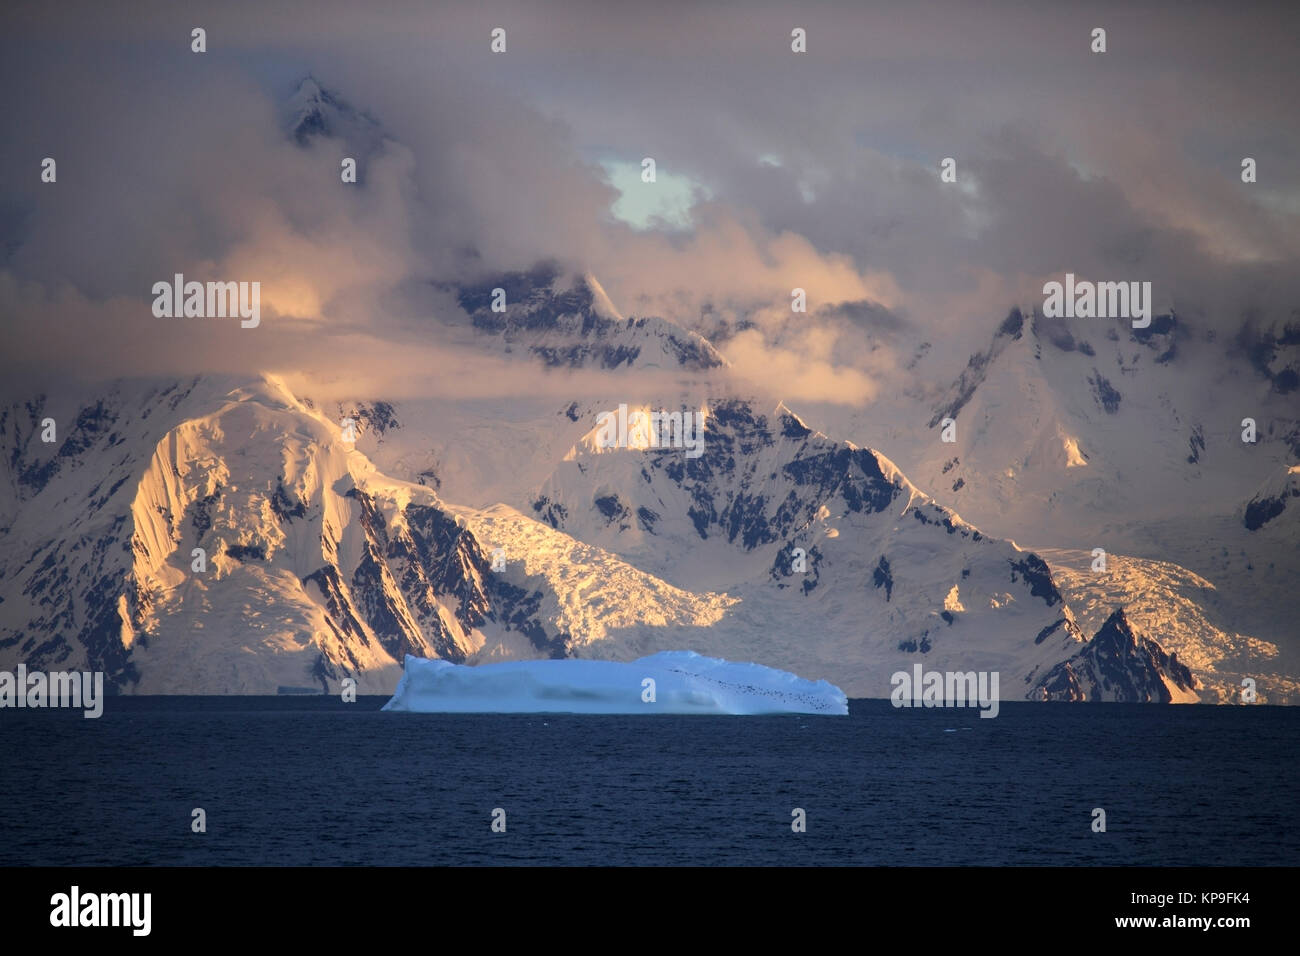 Mountains on the coast of the Antarctic Peninsula in Antarctica. - Stock Image